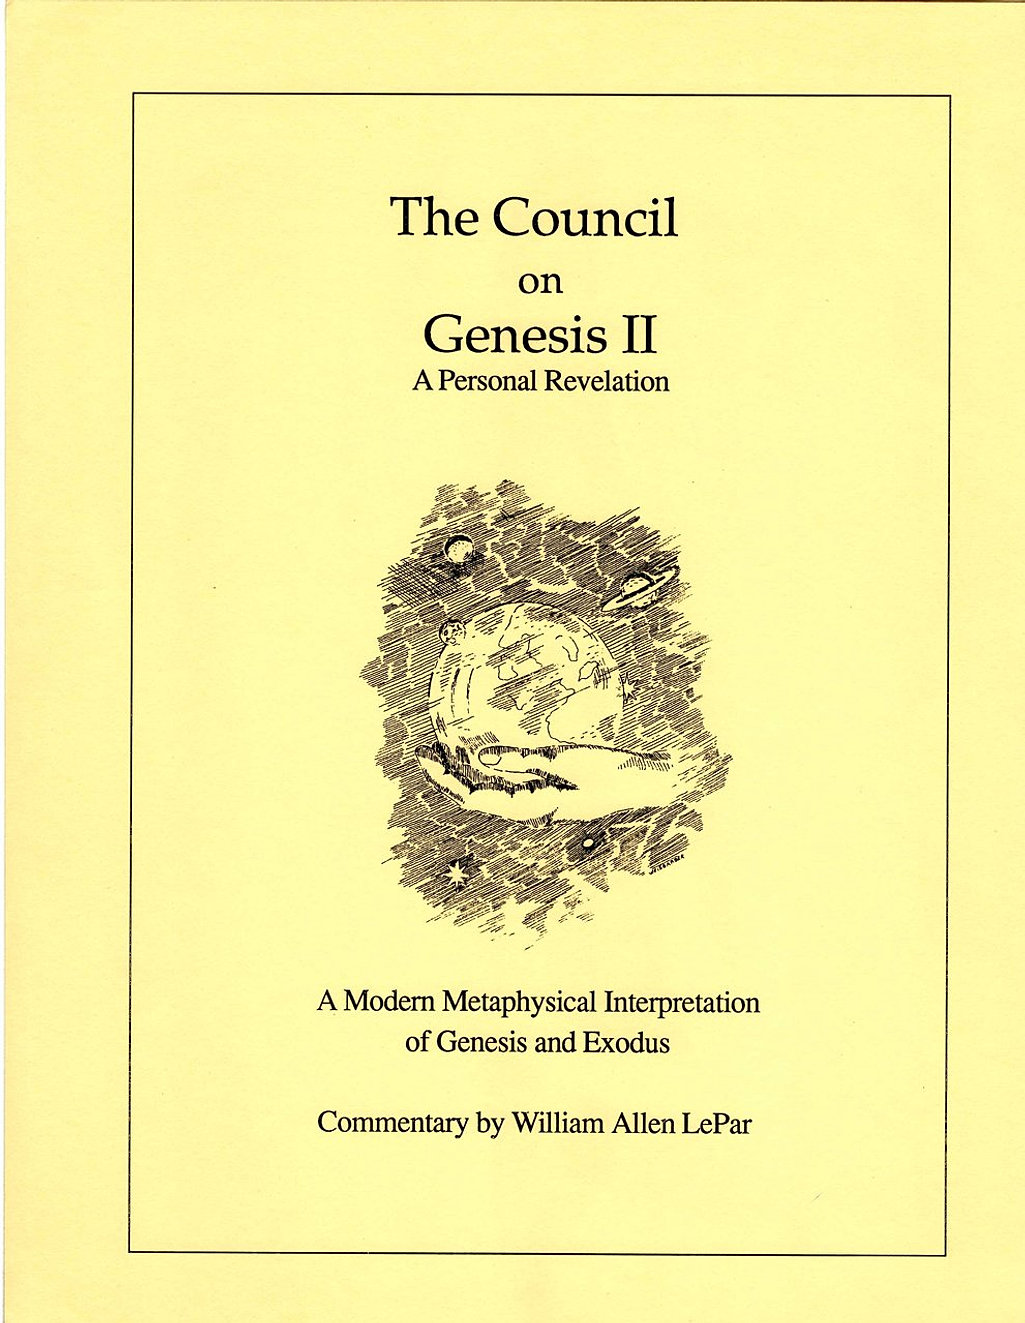 The Council on Genesis 2